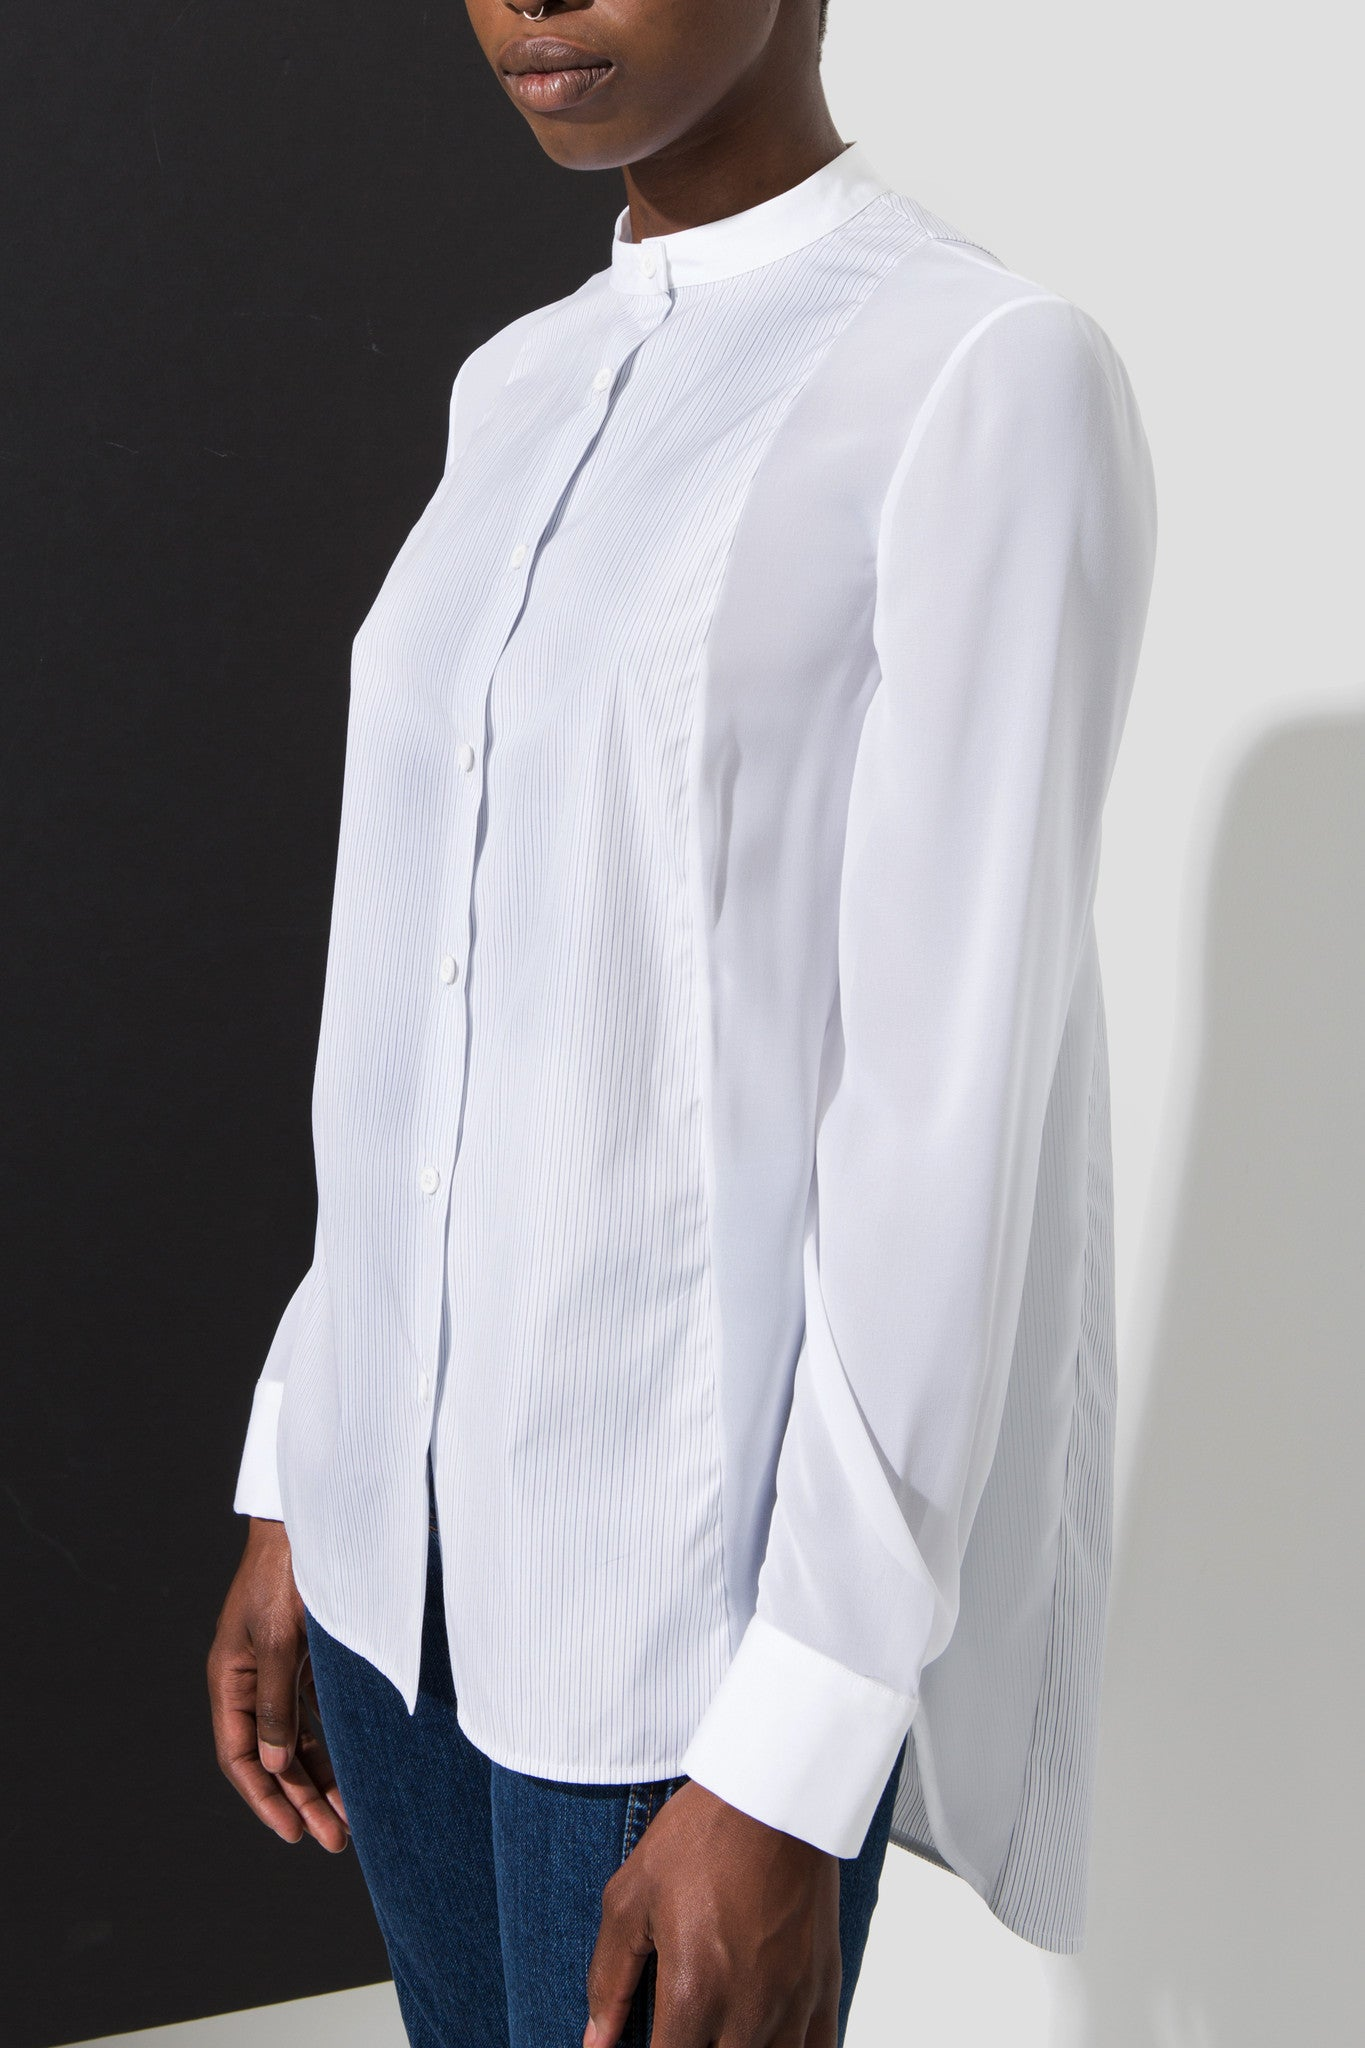 lou button up white striped shirt long blouse made of organic cotton with mandarin collar